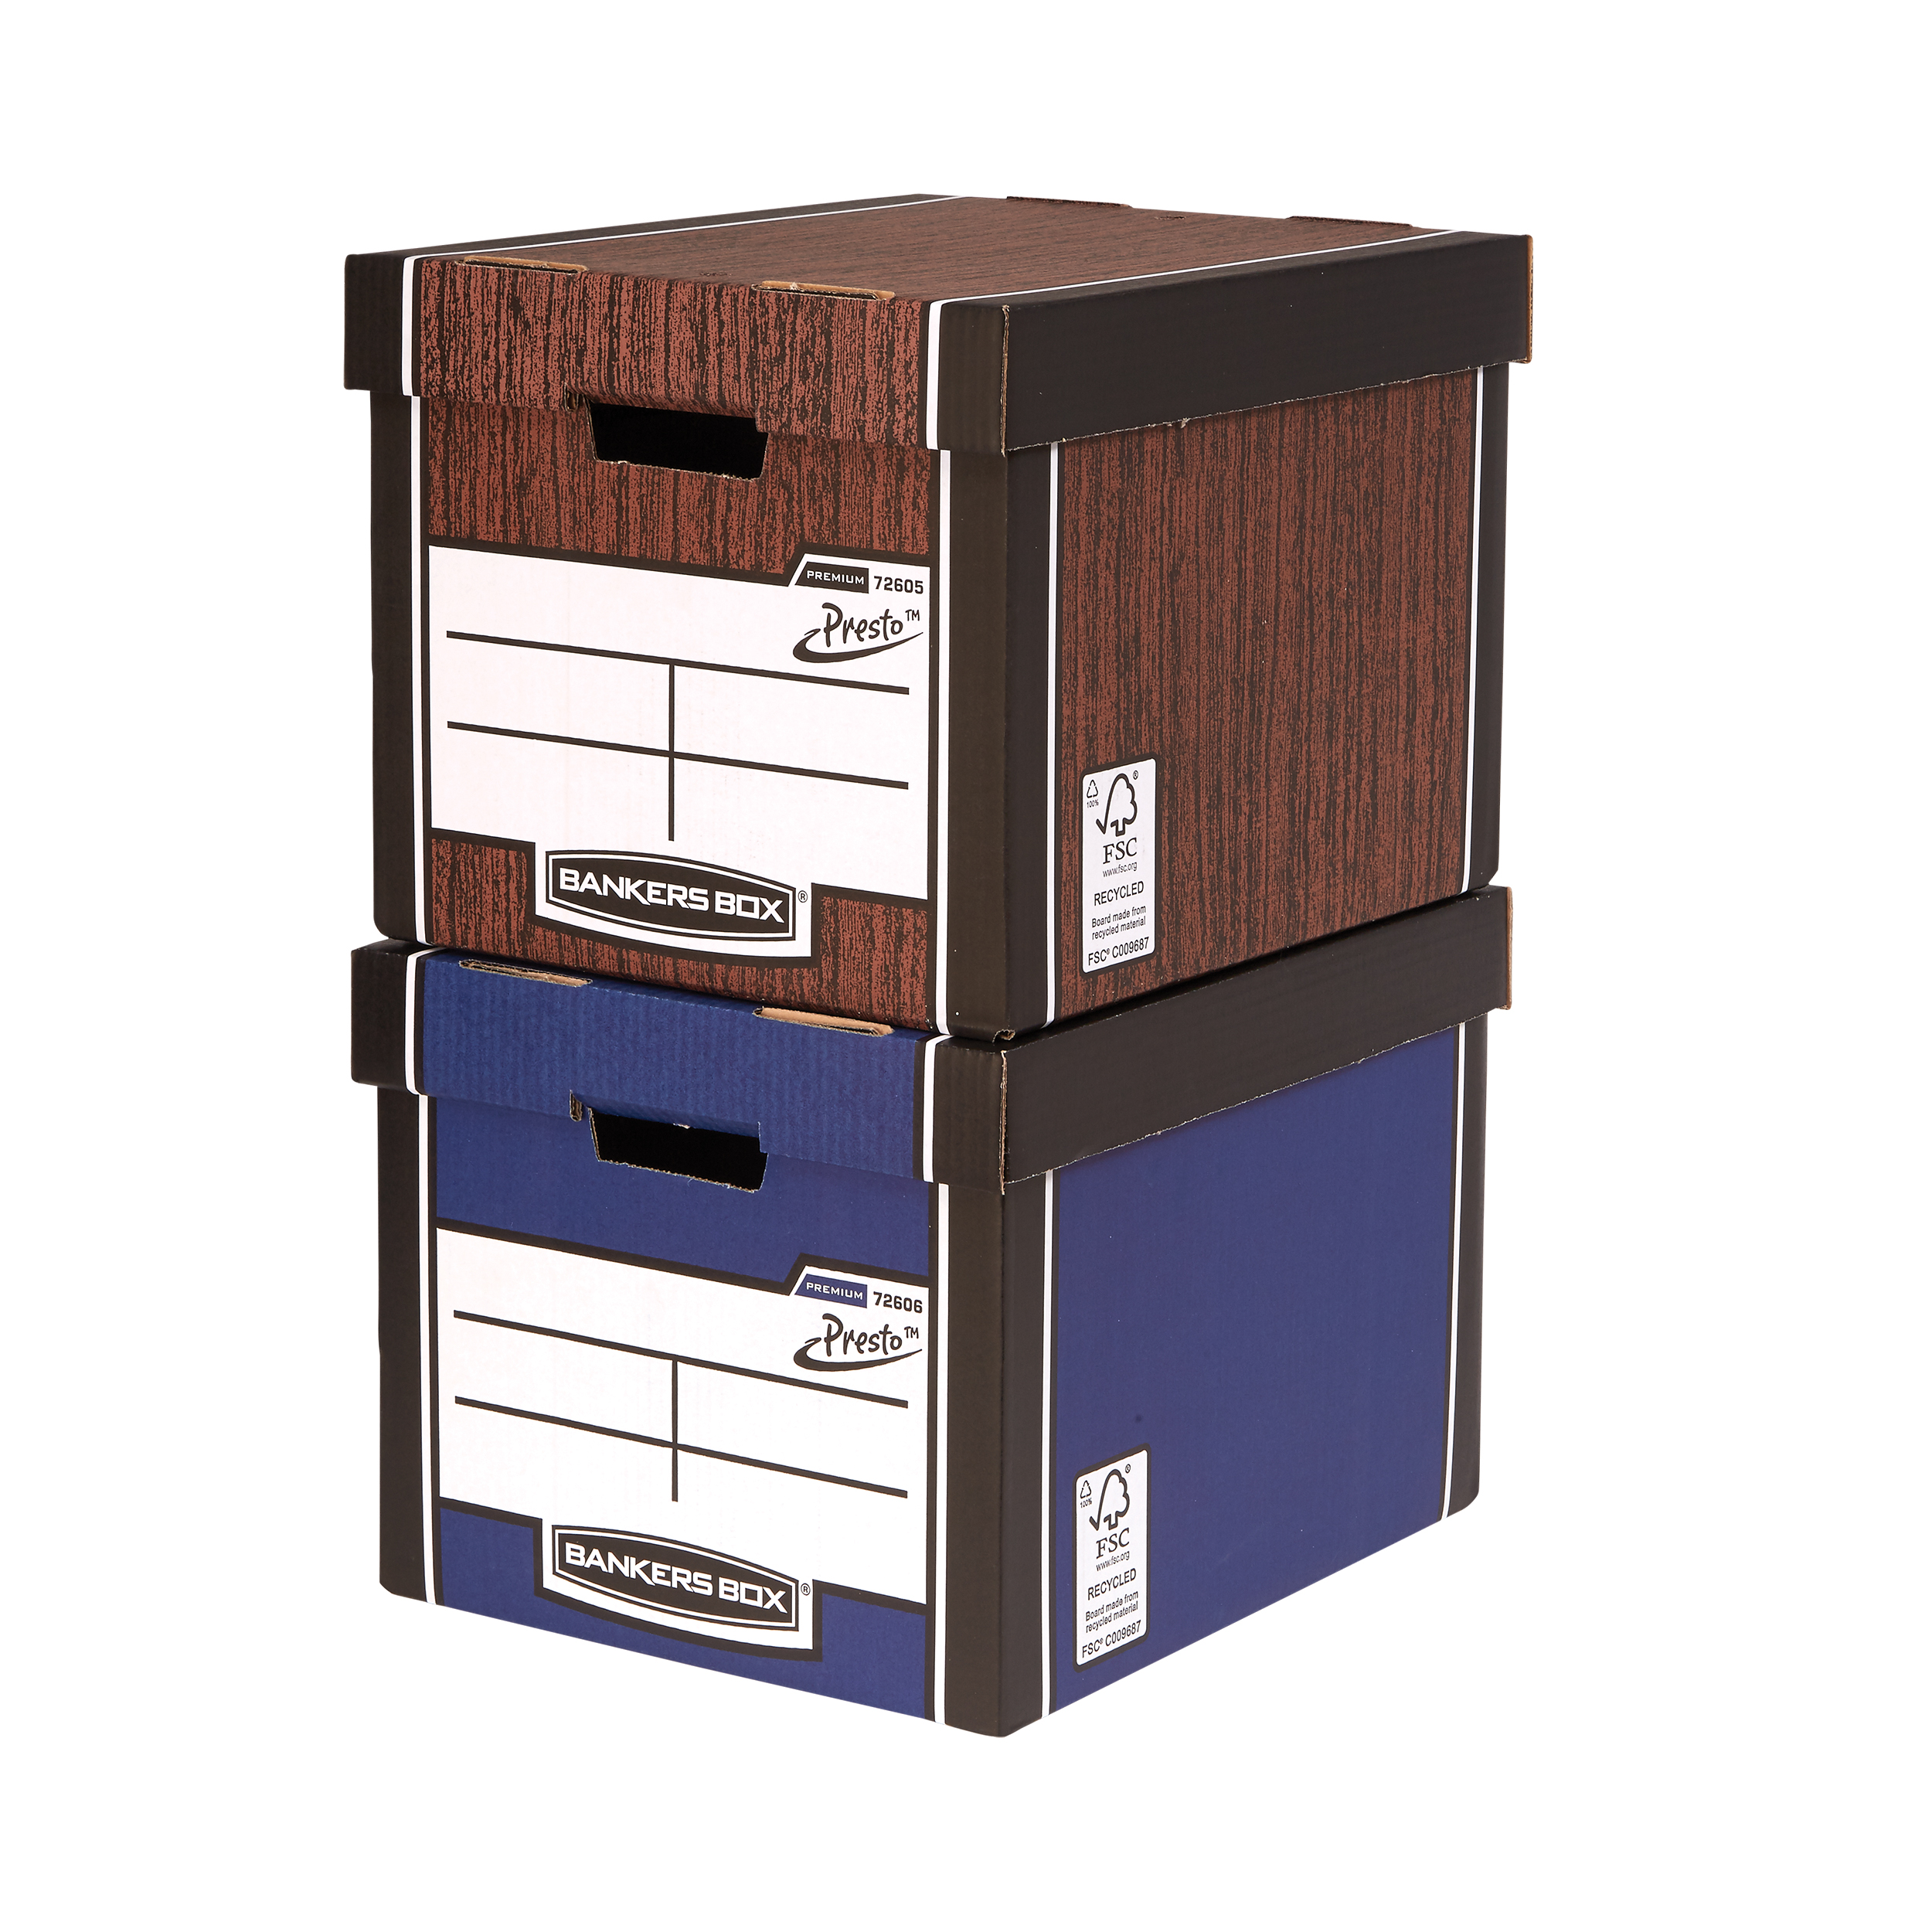 Storage Boxes Bankers Box FSC Premium Storage Box (Presto) Tall Blue Ref 7260603 Pack 12 12 for the price of 10